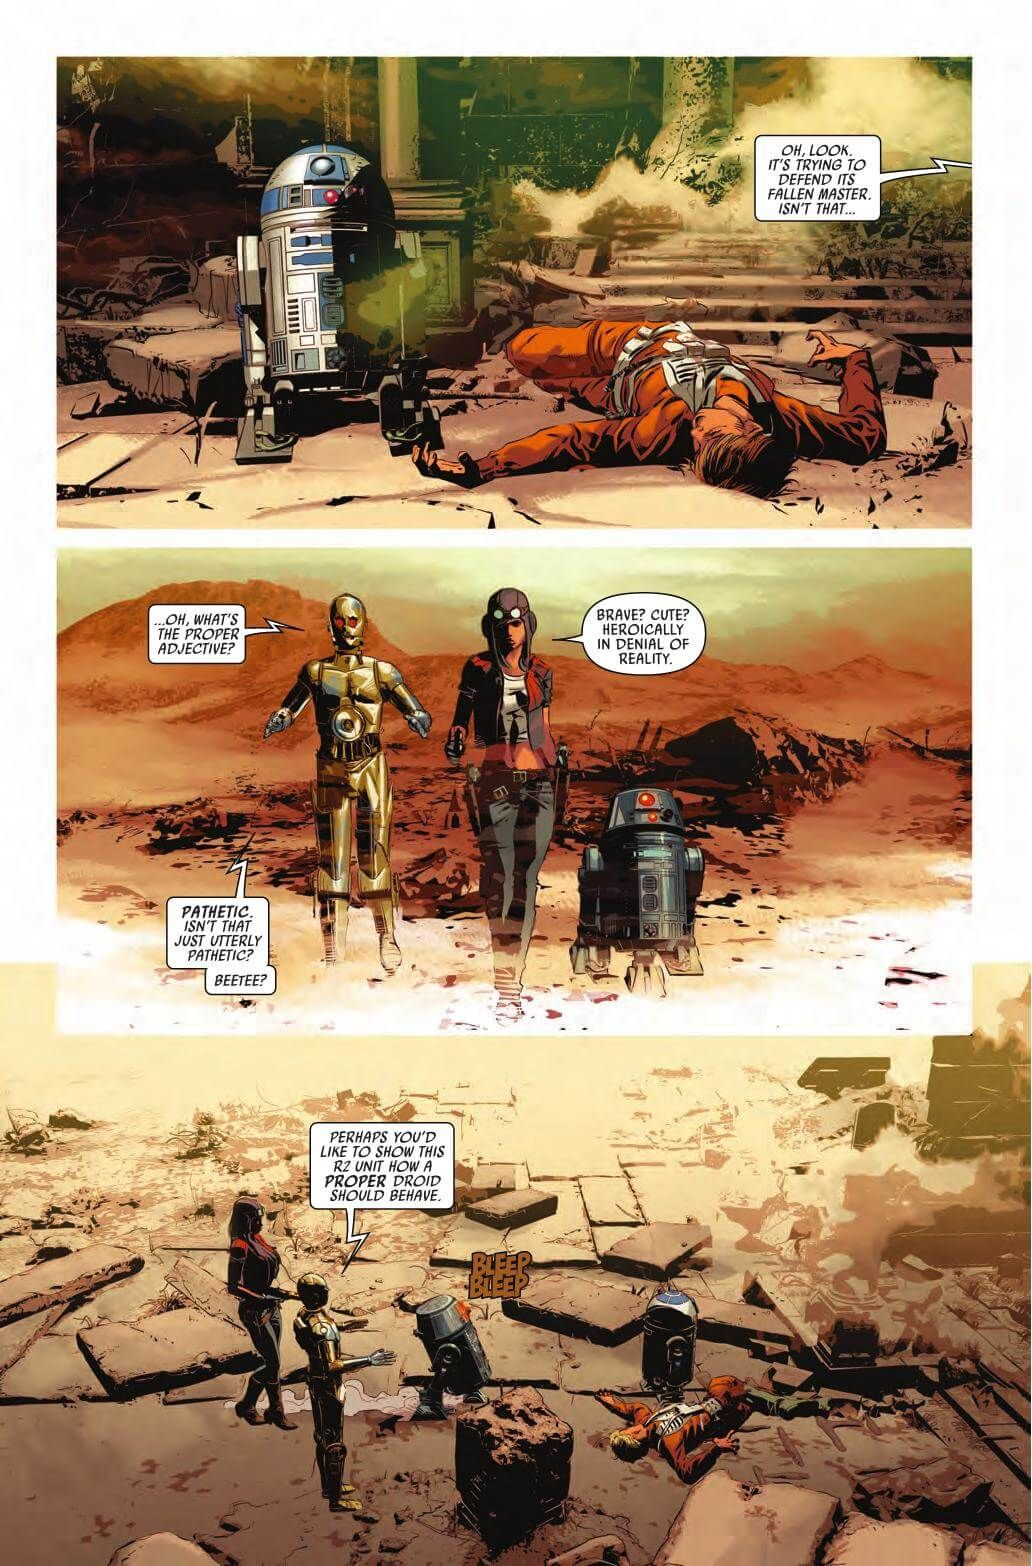 Preview: Star Wars #13, Story: Jason Aaron Art: Mike Deodato Jr. Covers: Mark Brooks, John Tyler Christopher & Clay Mann Publisher: Marvel Publication Date: December ...,  #All-Comic #All-ComicPreviews #ClayMann #Comics #JasonAaron #JohnTylerChristopher #MarkBrooks #Marvel #MikeDeodatoJr. #previews #StarWars